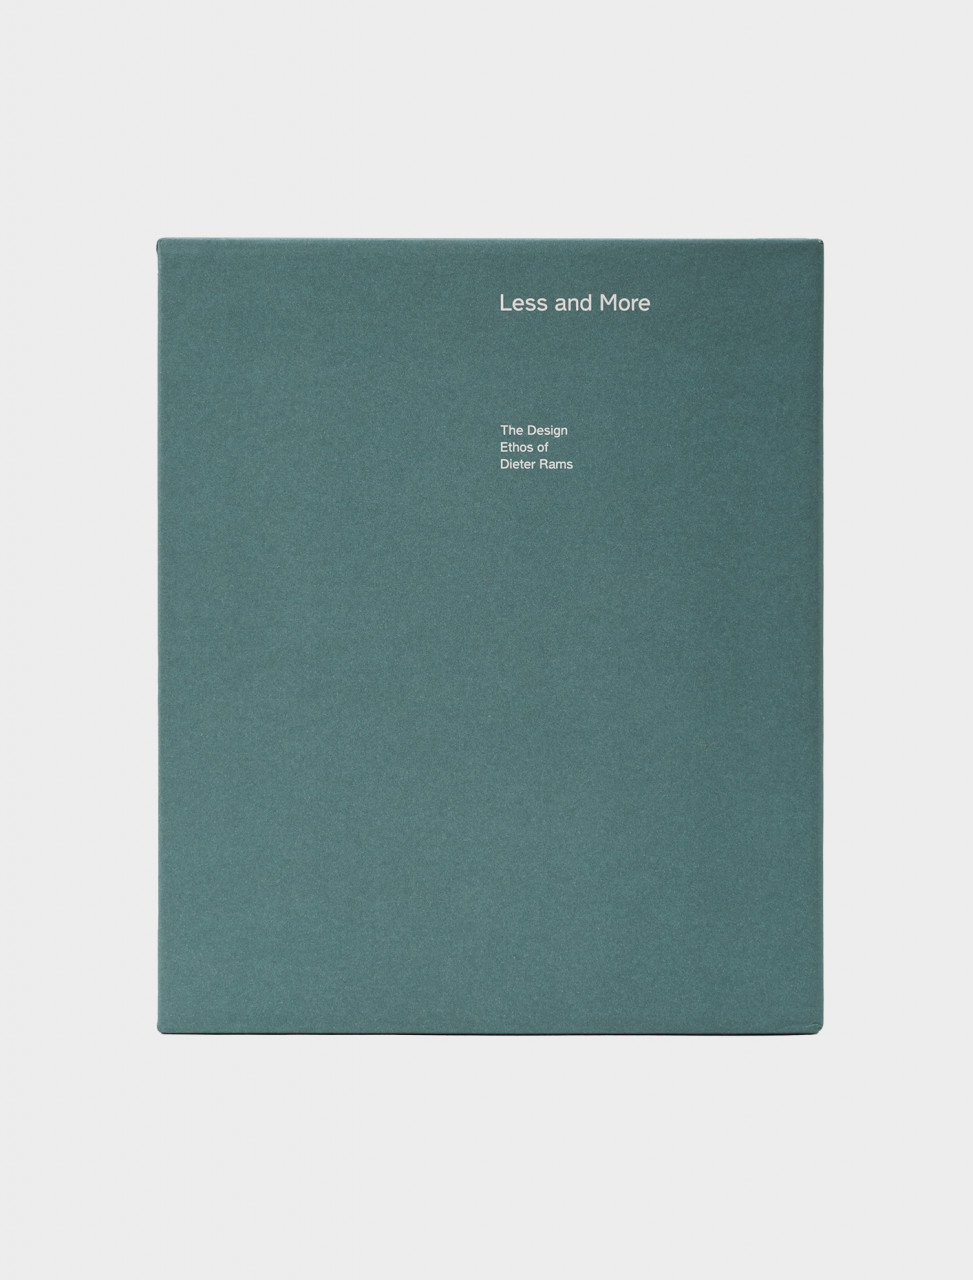 Front Cover of Gestalten Less and More: The Design Ethos of Dieter Rams